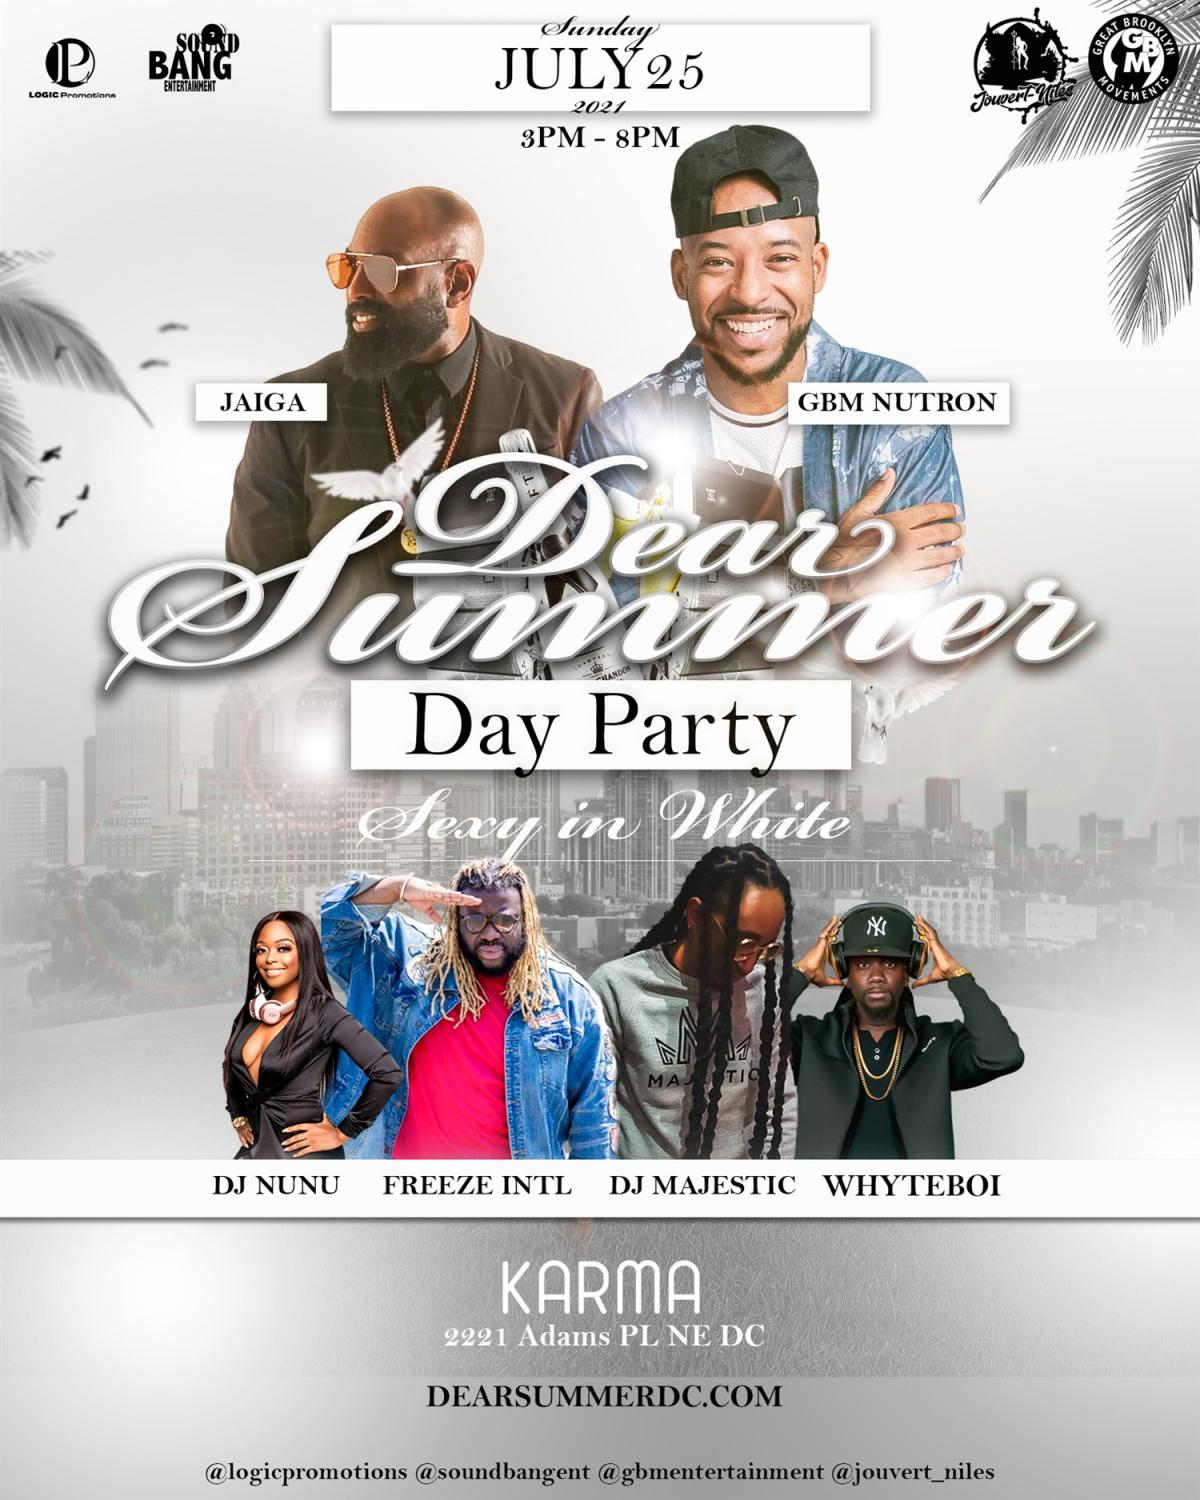 Dear Summer Day Party Sexy in White flyer or graphic.